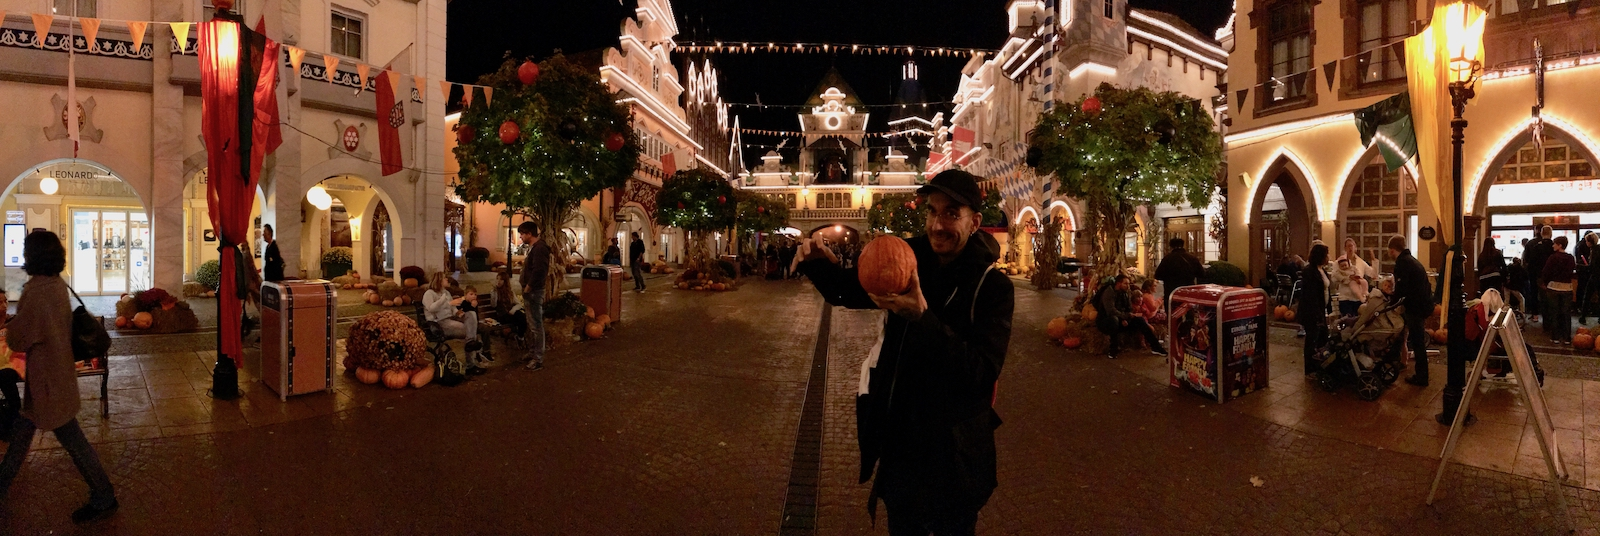 halloween_mark_benecke_wissenschafts_shows_science_days_europapark_kriminalbiologie_mumien - 80.jpg